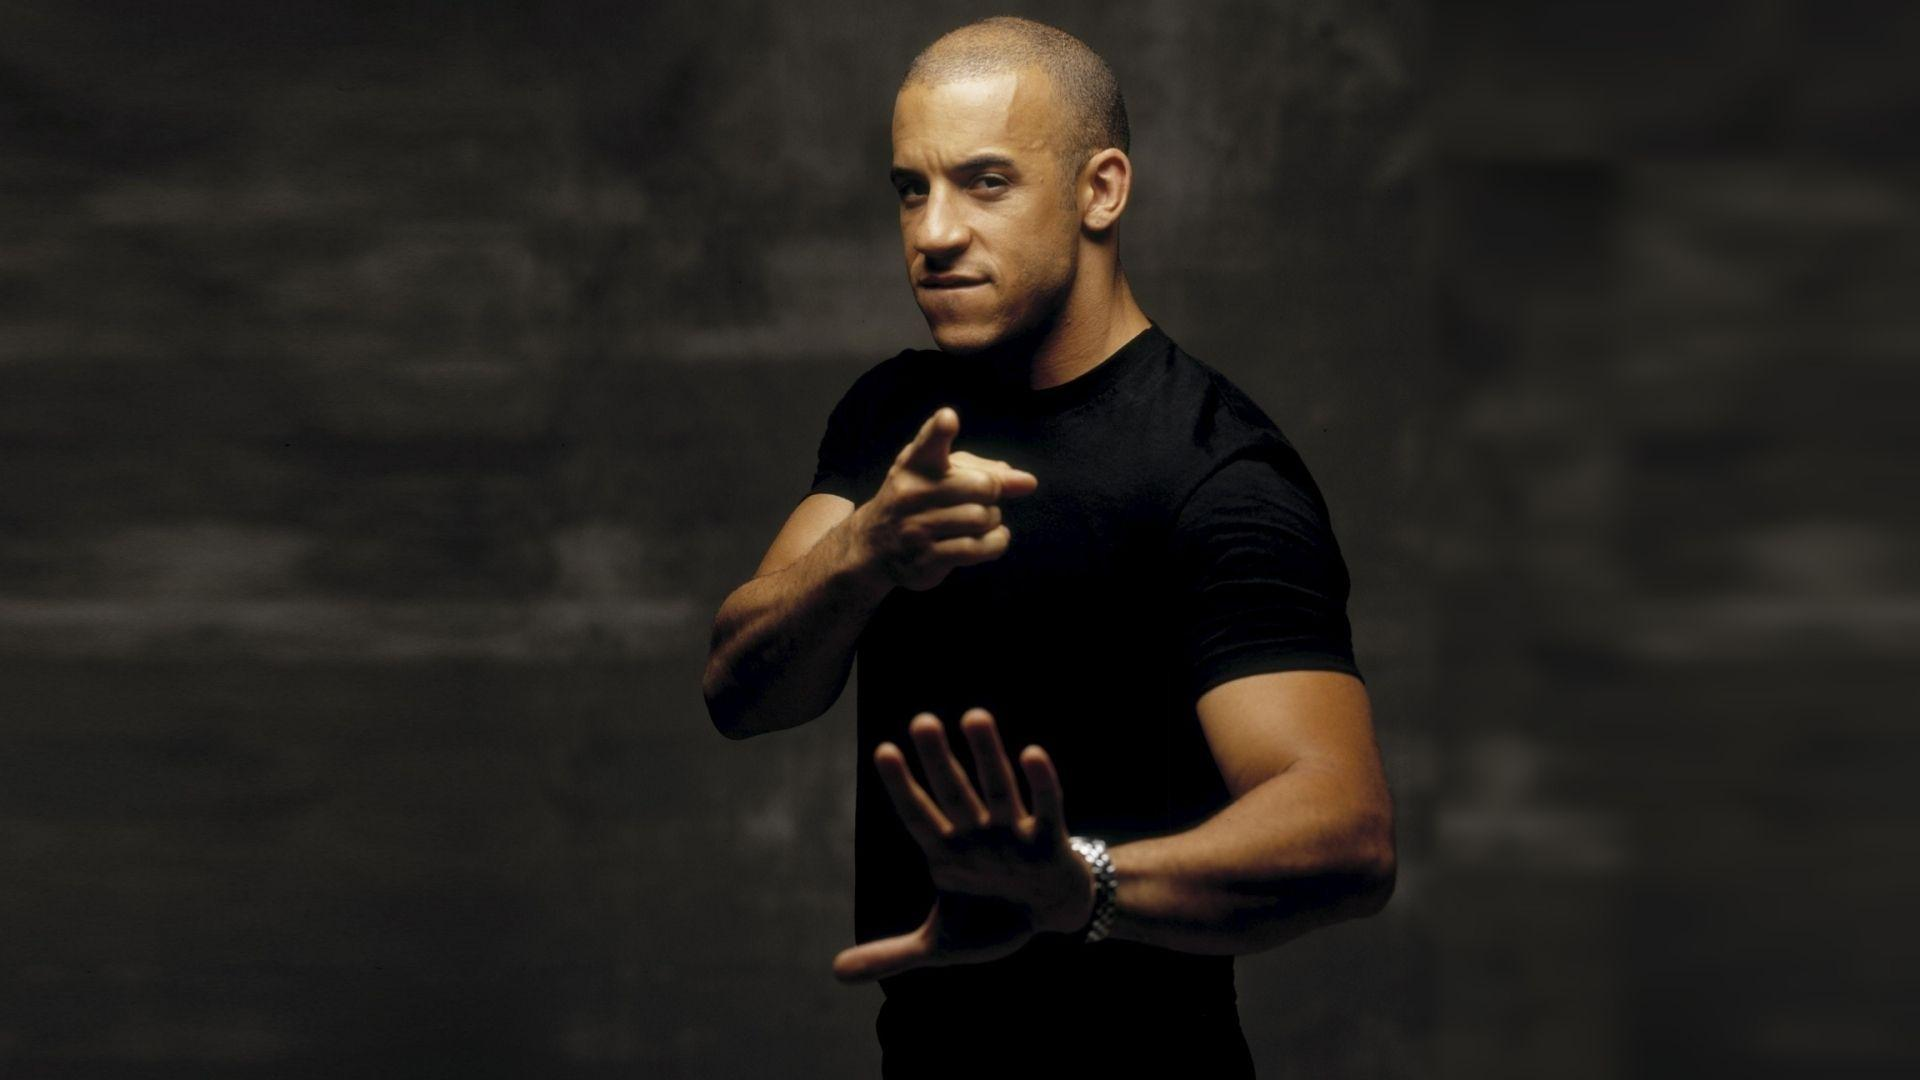 vin diesel wallpaper | All new images